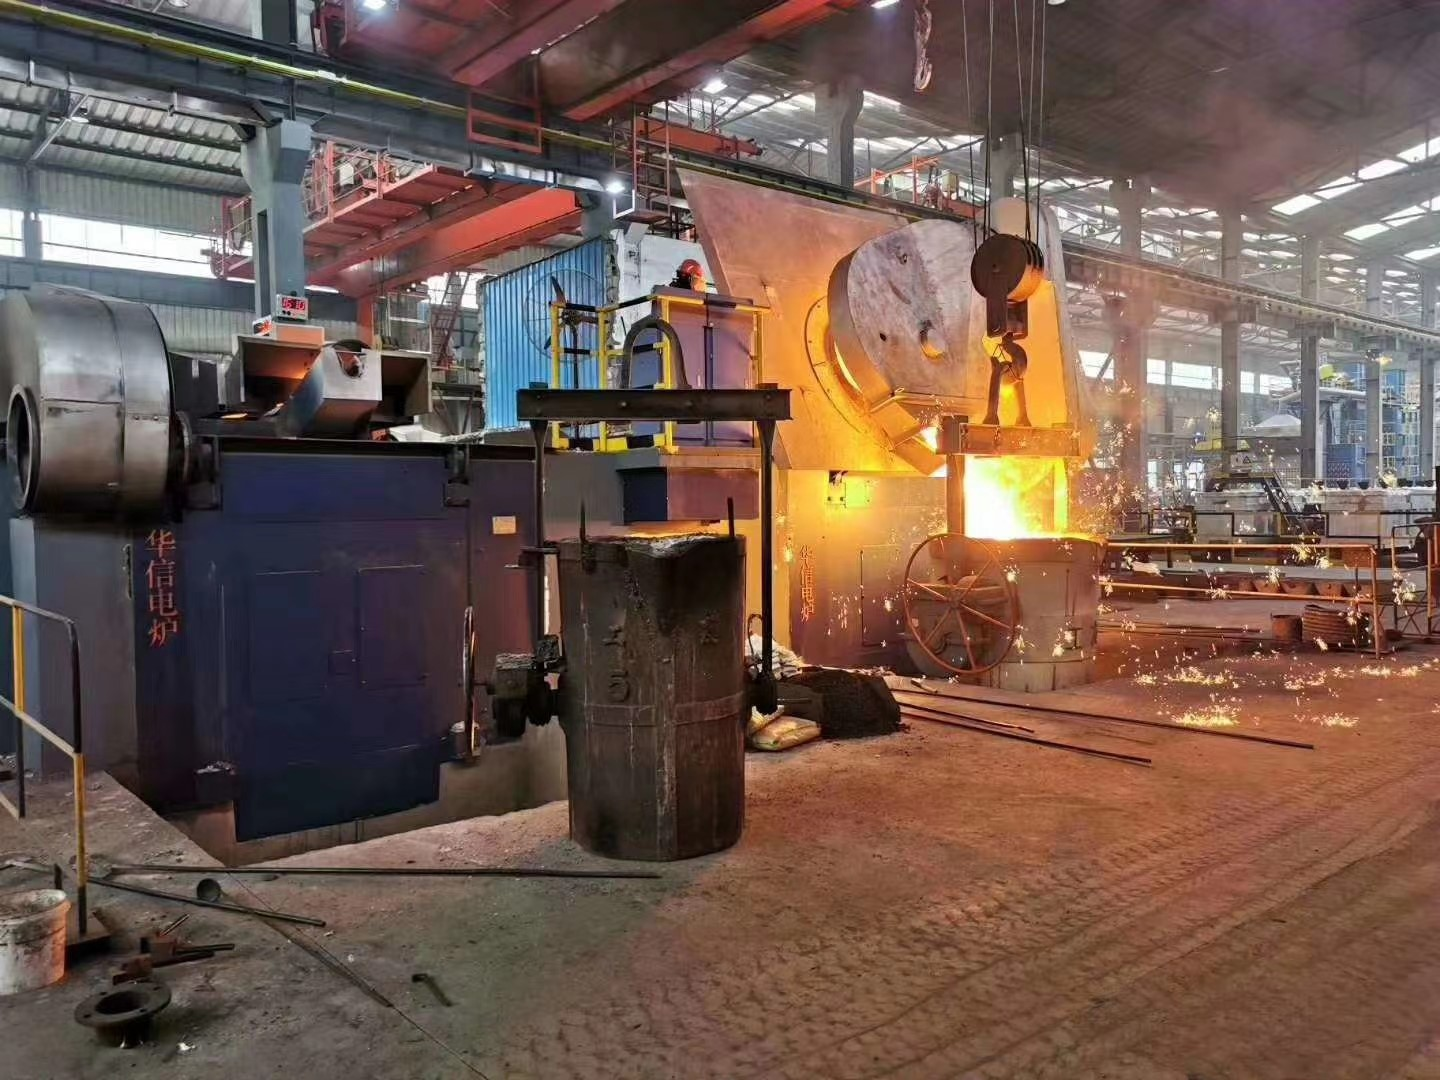 dual tract induction melting furnace site